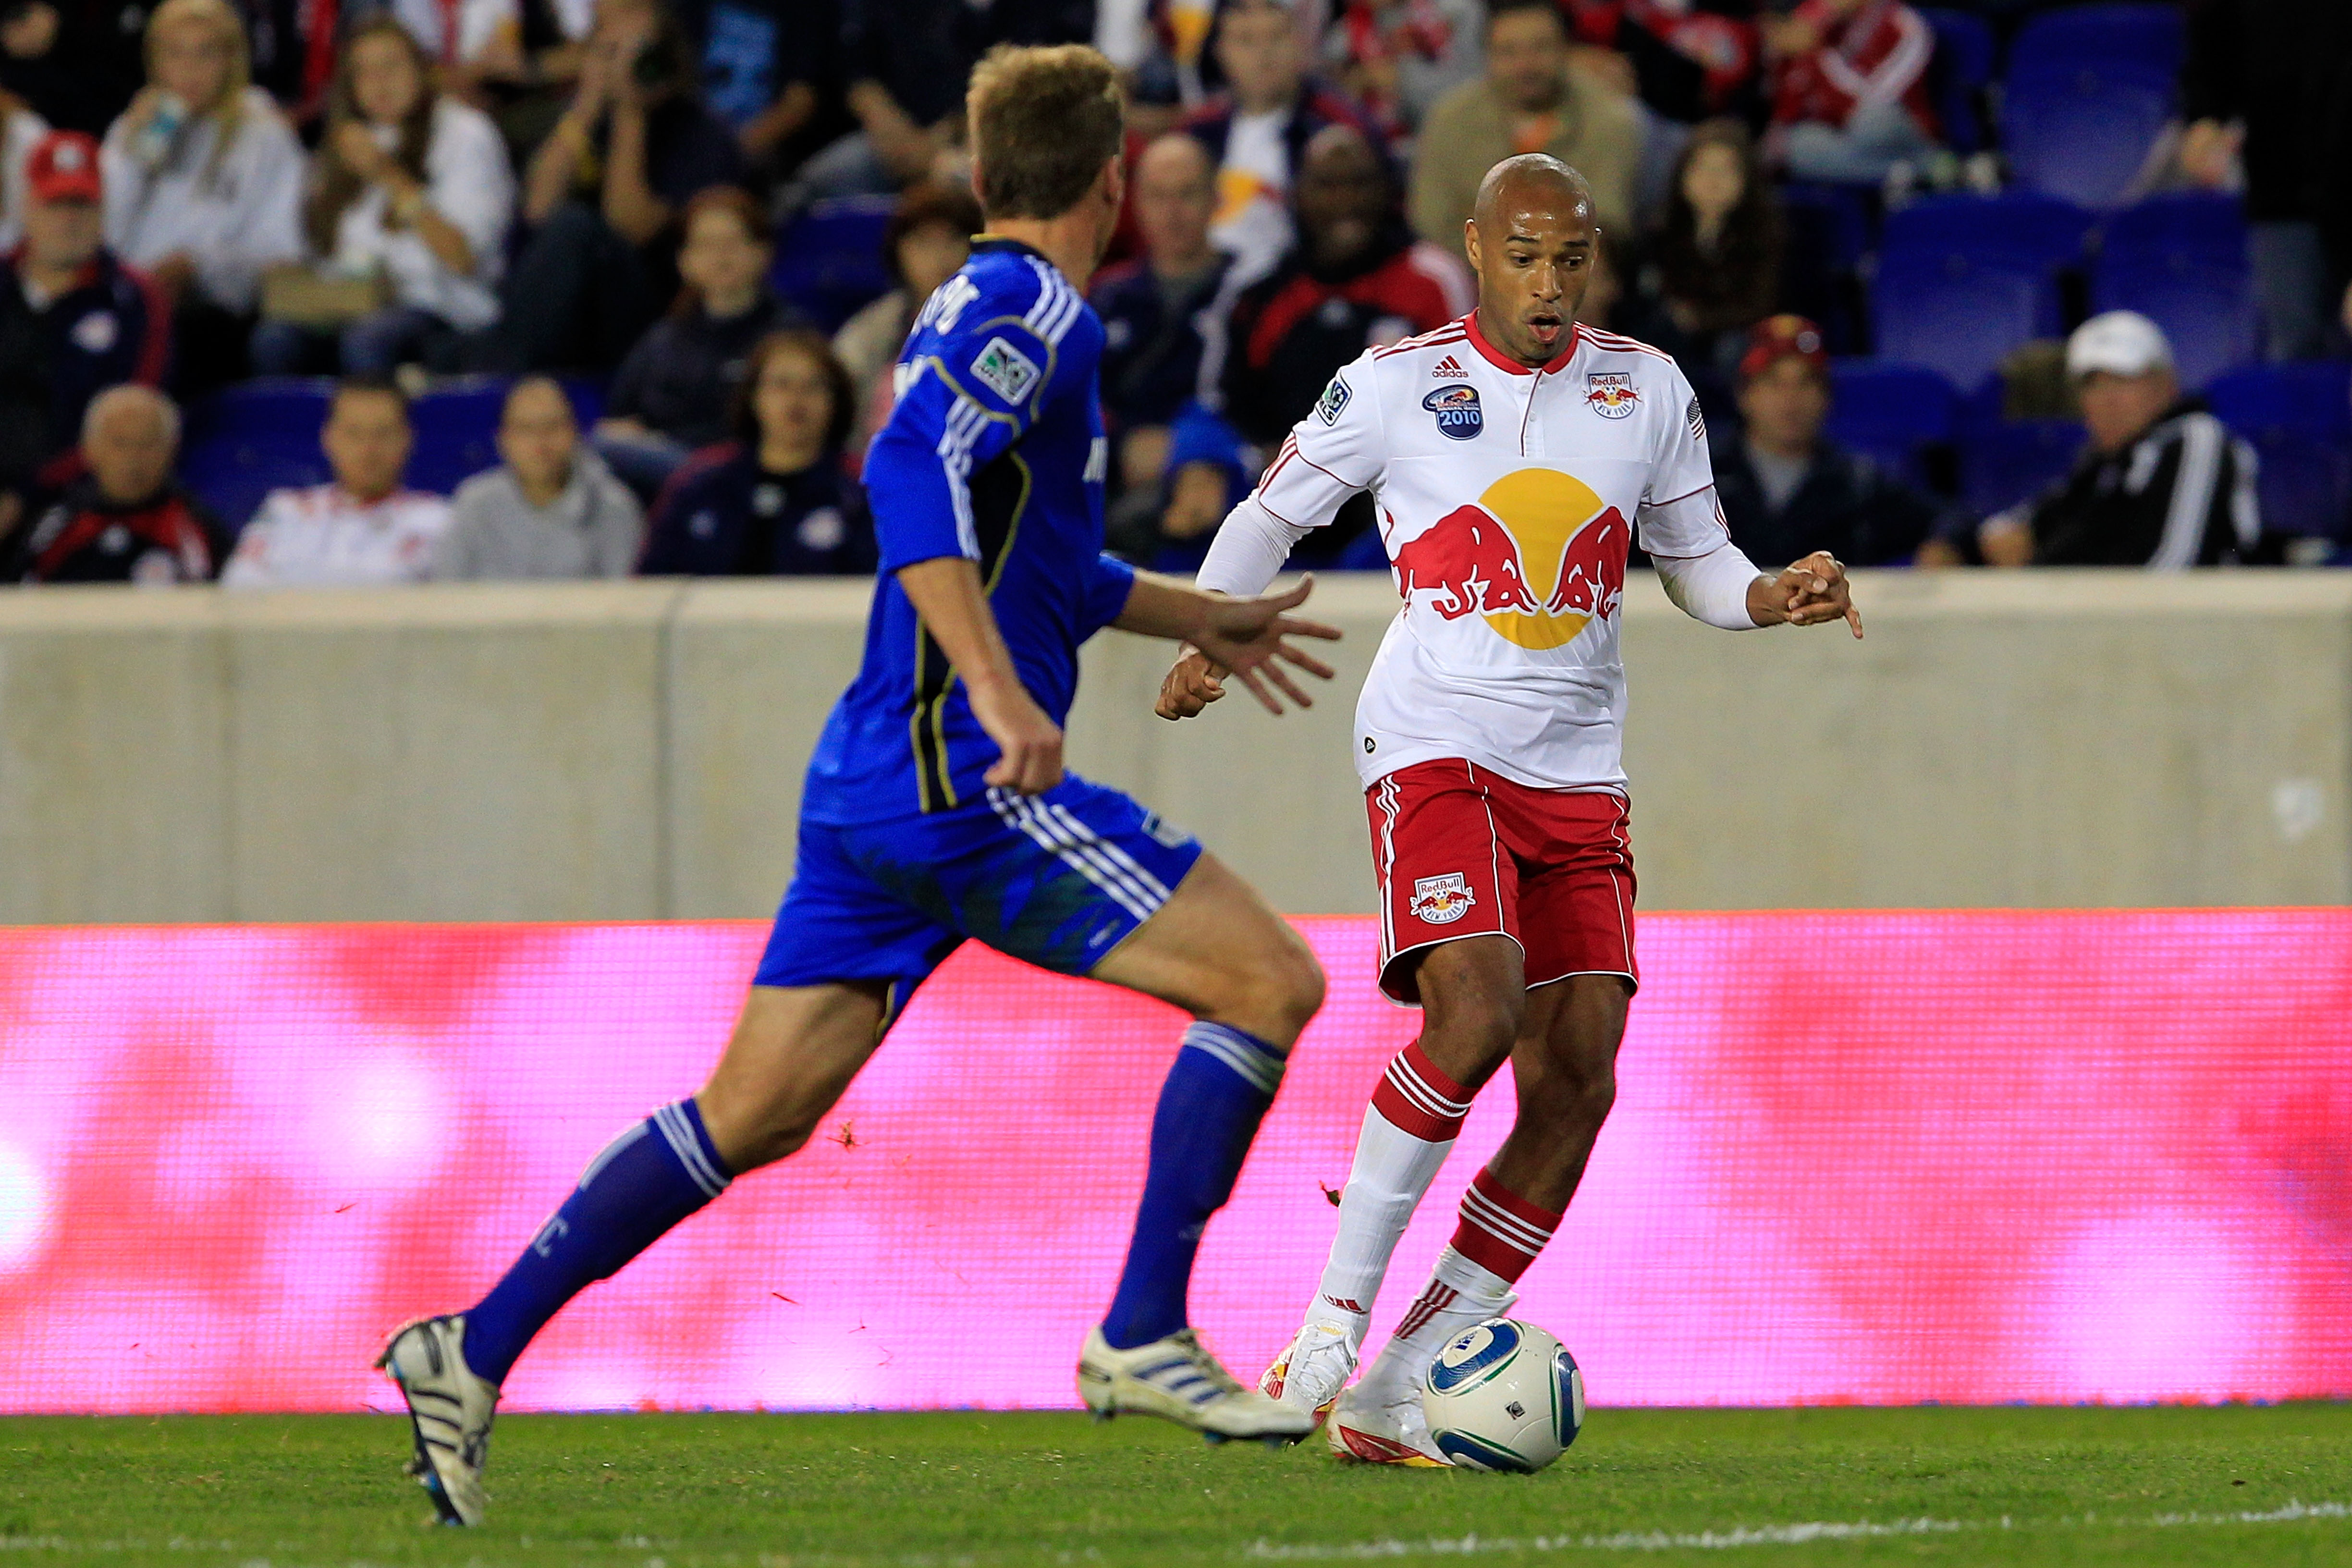 HARRISON, NJ - OCTOBER 02: Thierry Henry #14 of the New York Red Bulls controls the ball against Jimmy Conrad #12 of the Kansas City Wizards on October 2, 2010 at Red Bull Arena in Harrison, New Jersey. The Red Bulls defeated the Wizards 1-0. (Photo by Ch